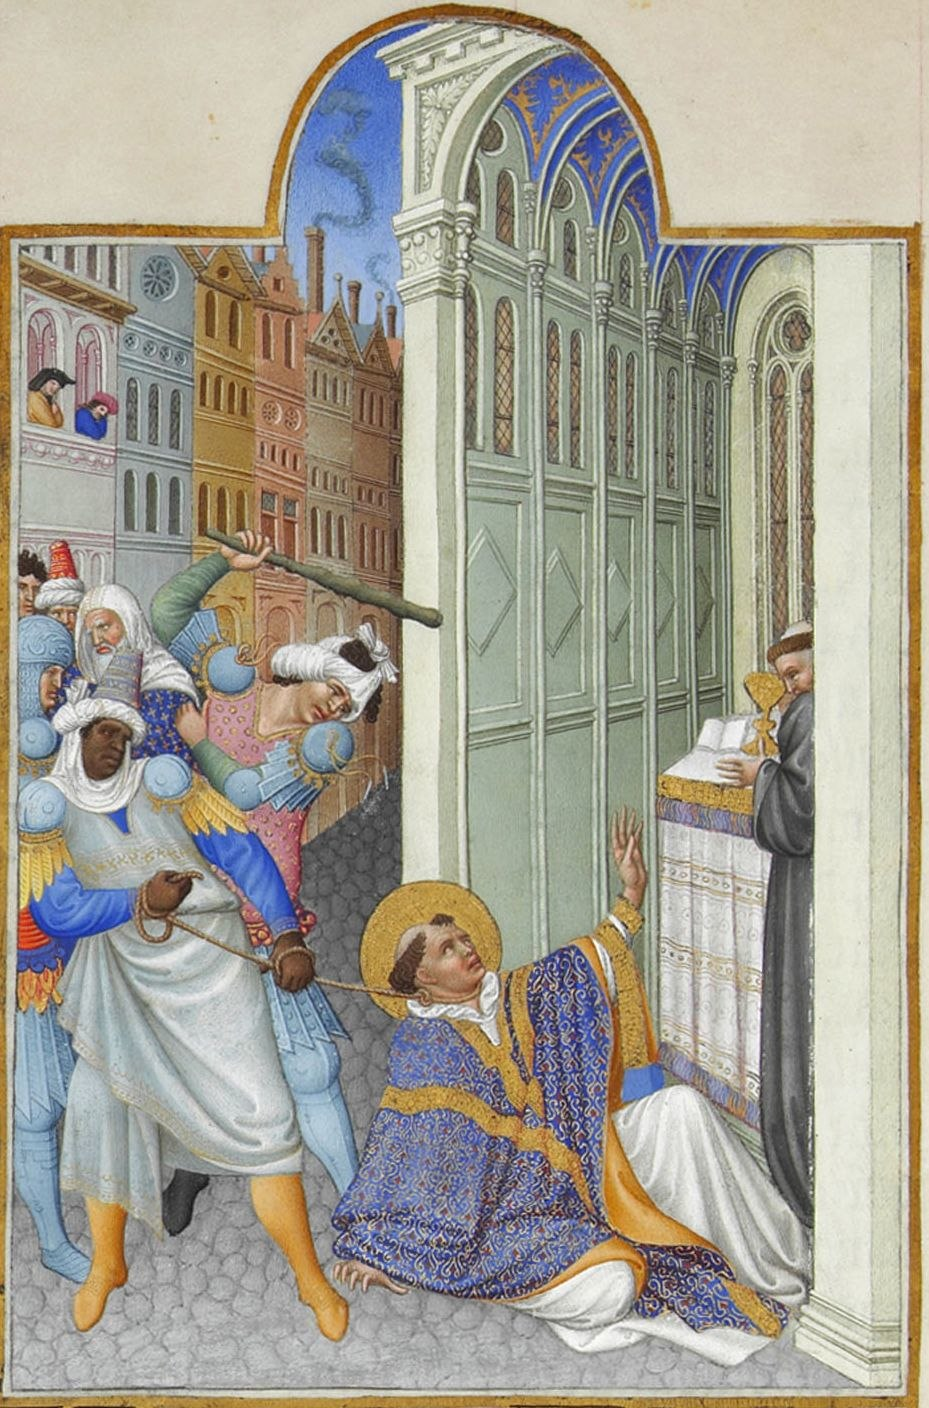 Folio 19v - The Martyrdom of Saint Mark